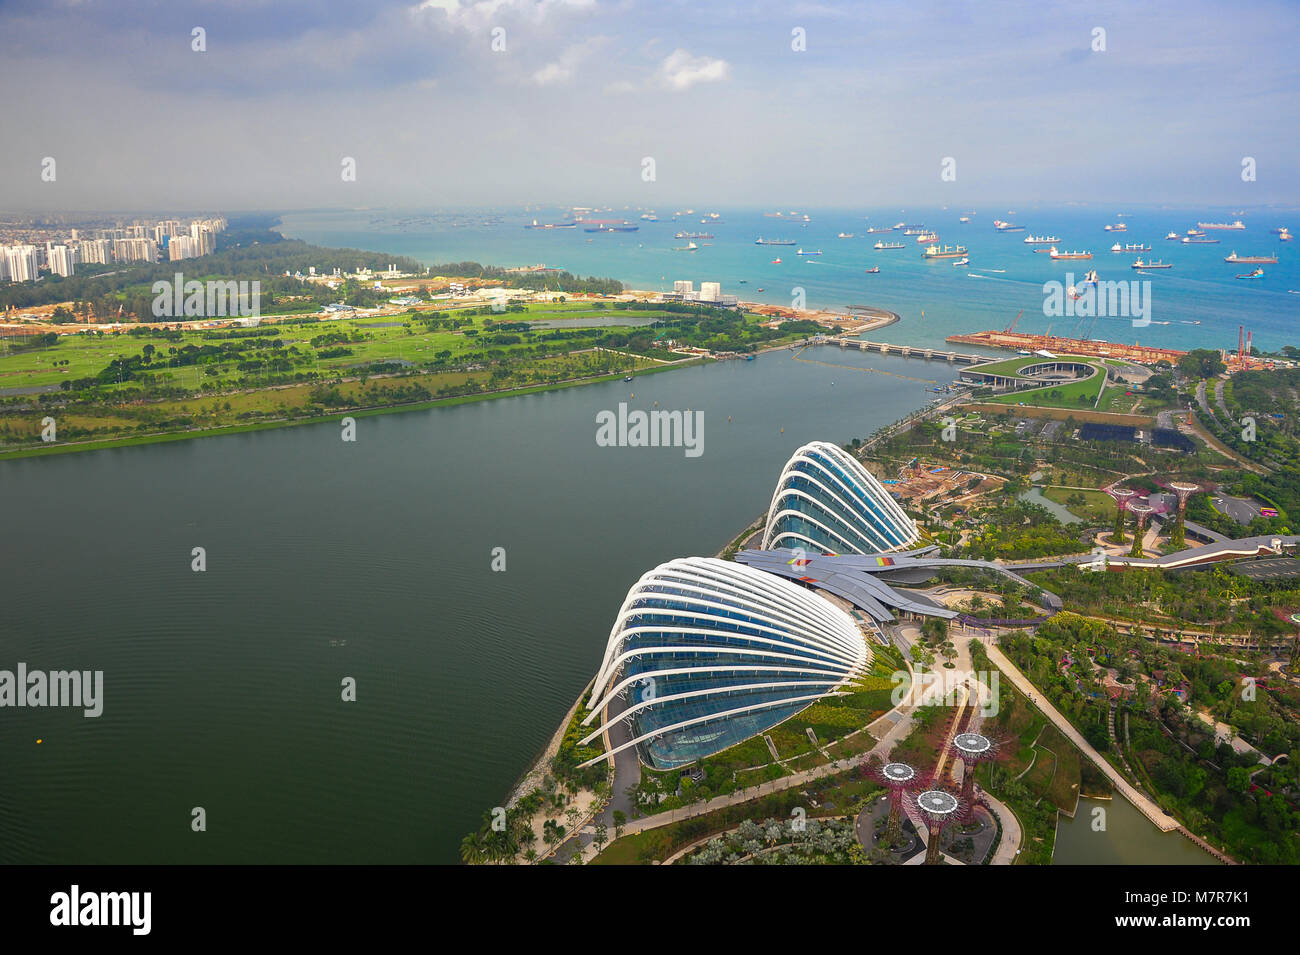 Singapore: Aerial panorama of Flower Dome and Cloud Forest at Gardens by the Bay, Marina Bay, with downtown Singapore, - Stock Image